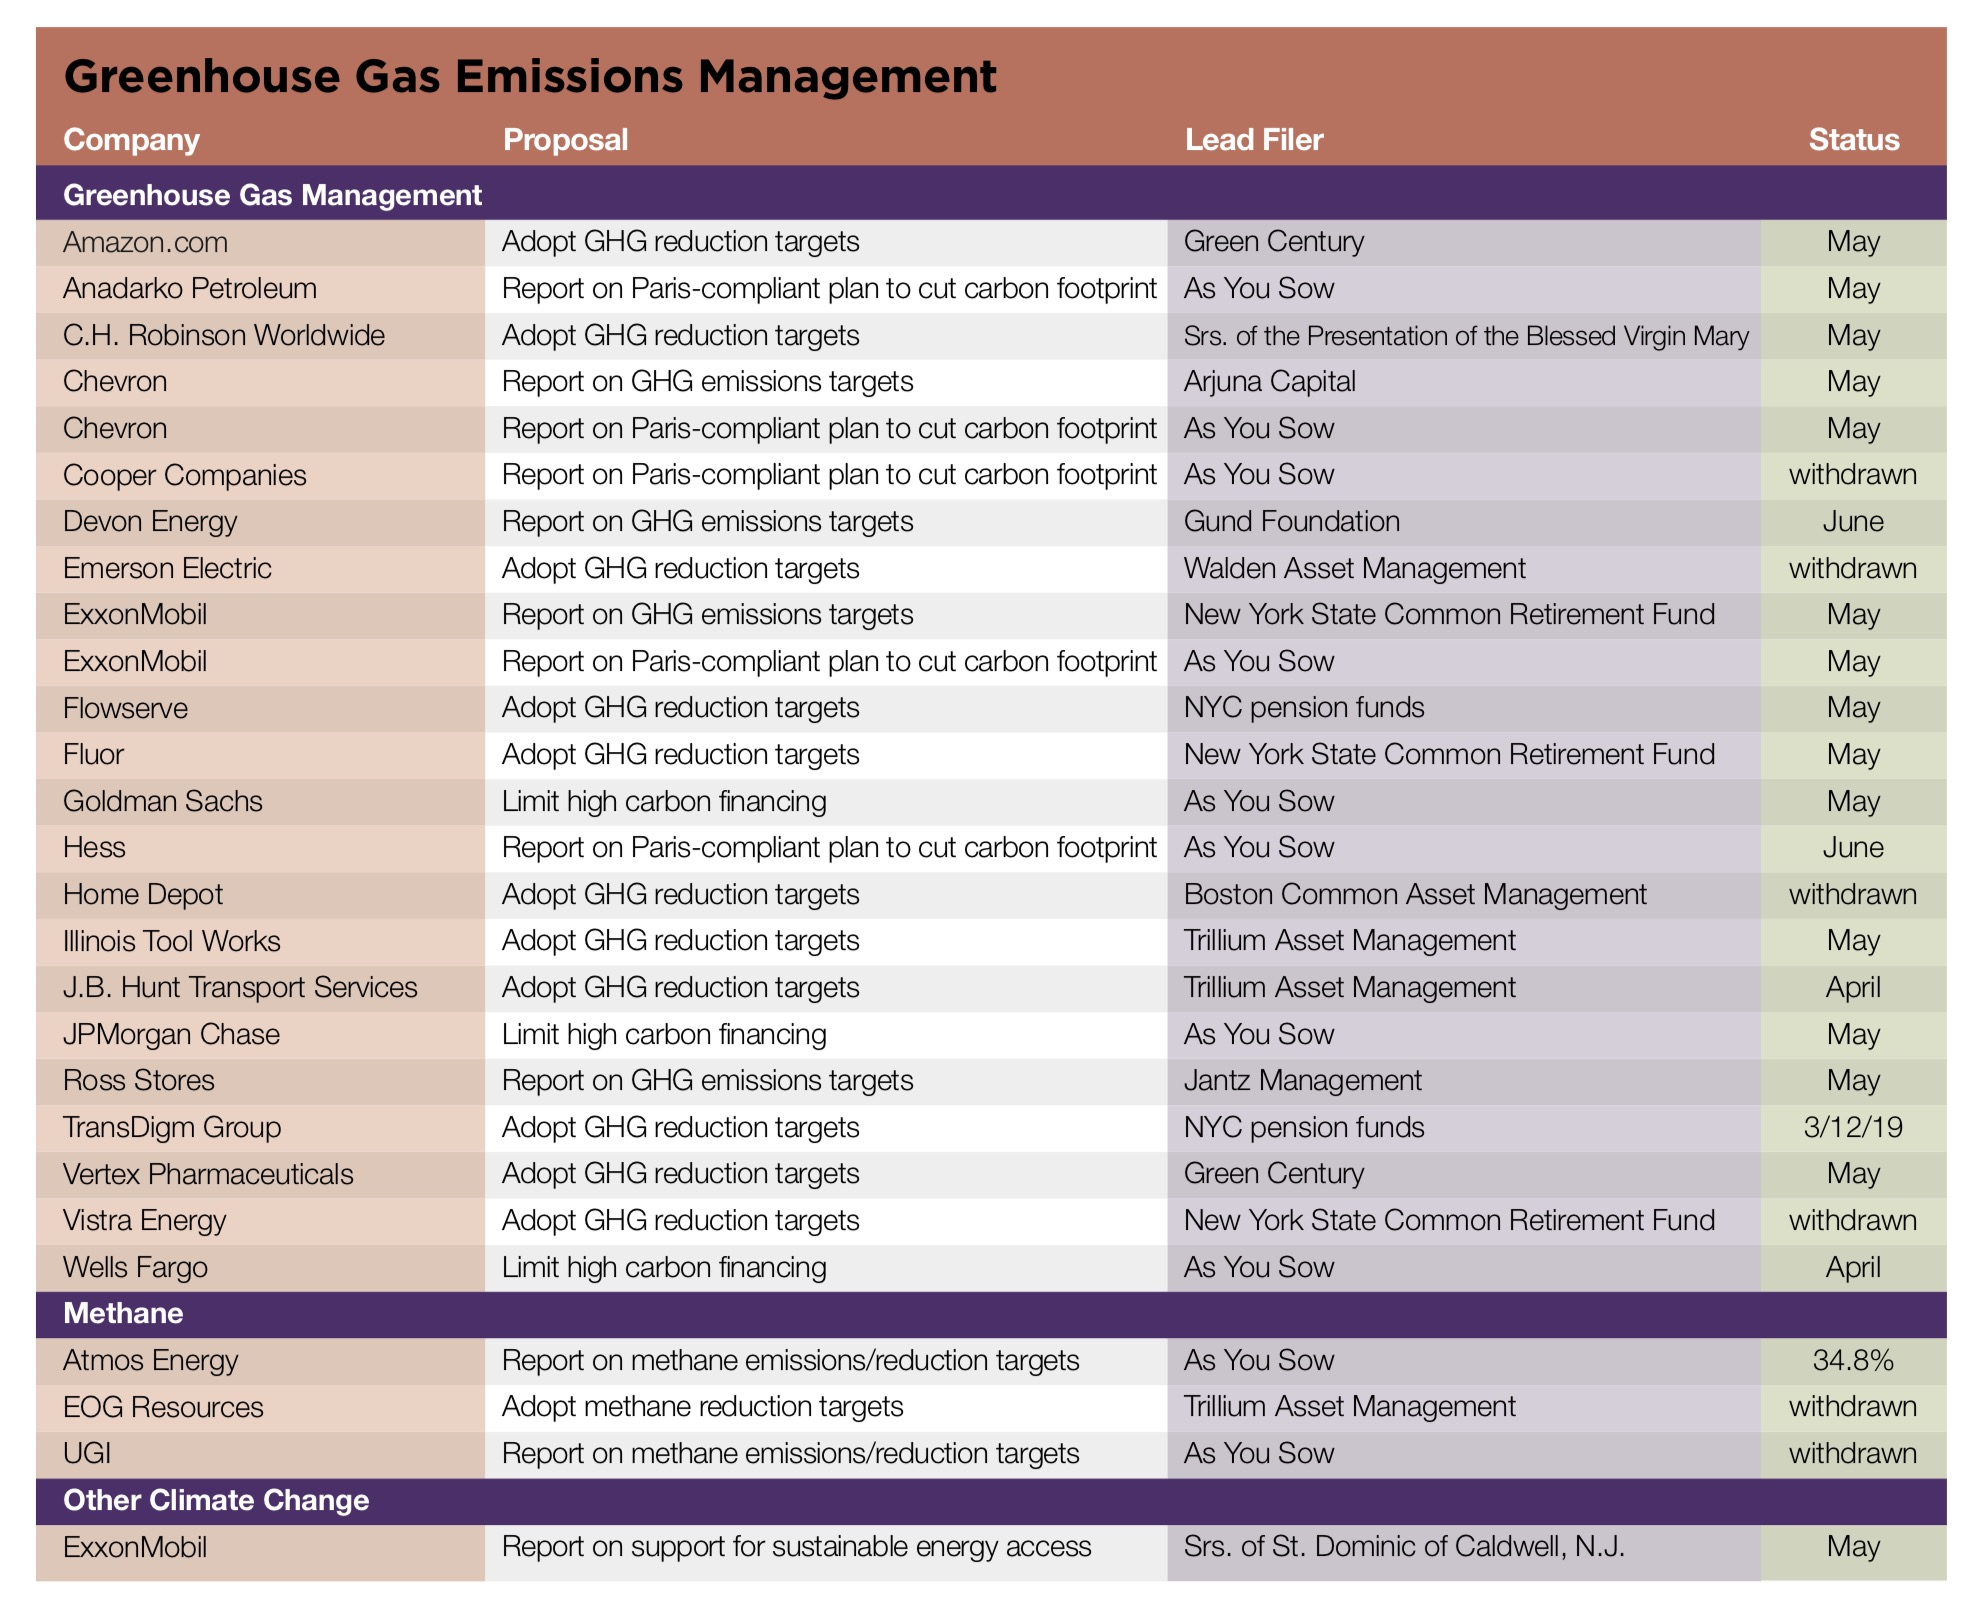 Greenhouse Gas Emissions Management